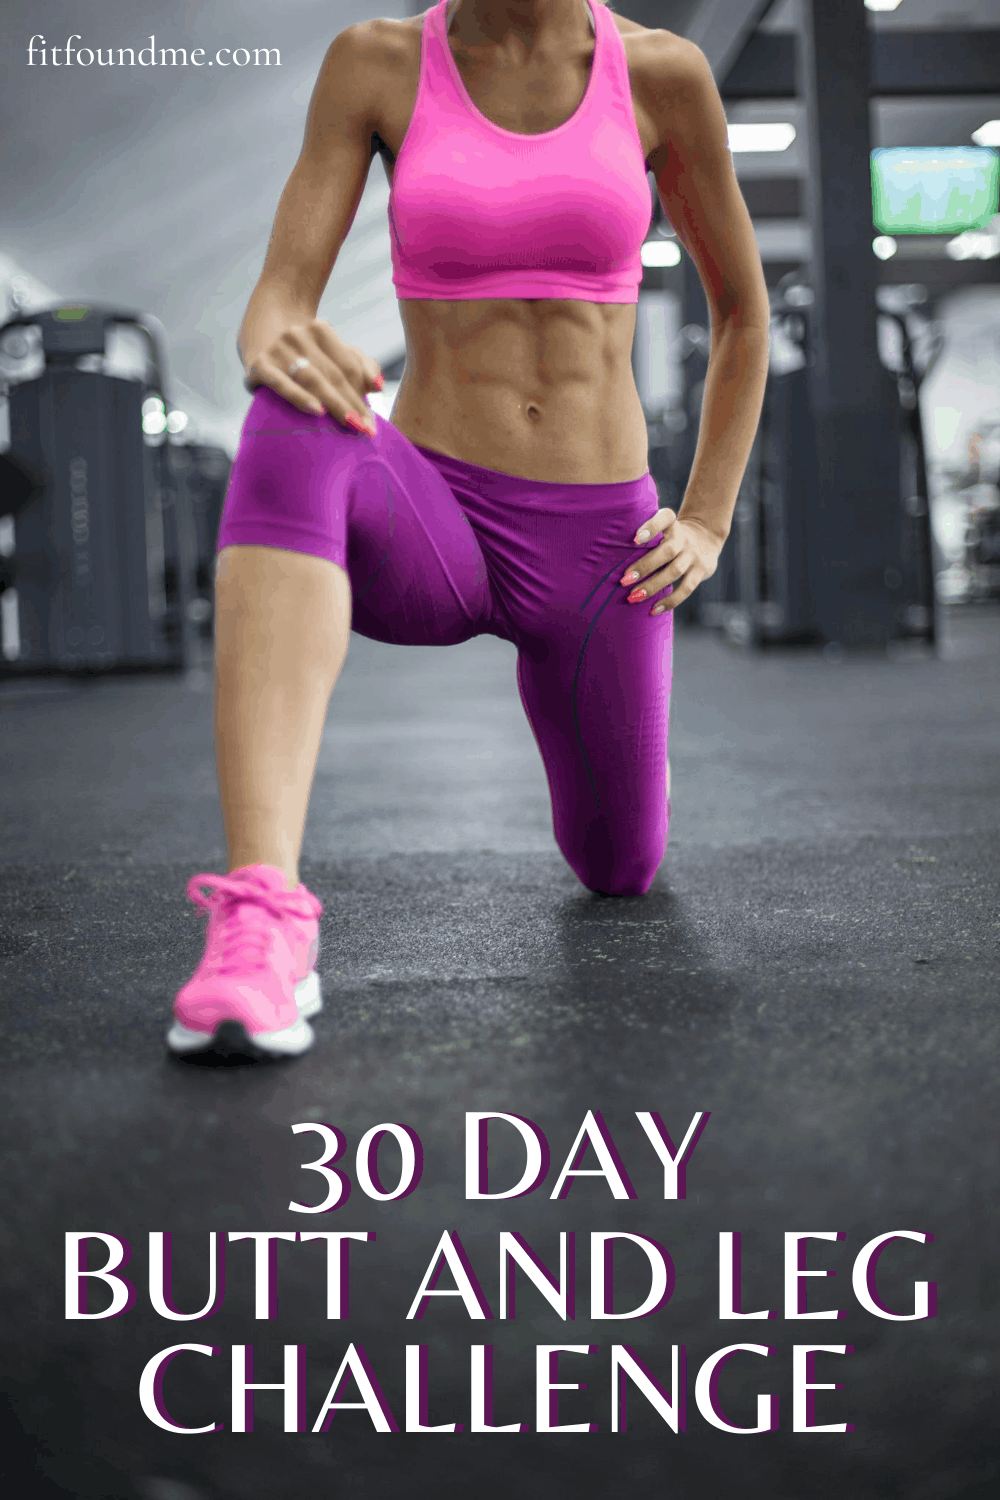 Print this 30 day leg and butt workout to tone and lift. Don't be afraid to work your legs - it's the muscle that will slim your legs and build your booty! We want to get rid of the mom butt and fight gravity. via @fitfoundme